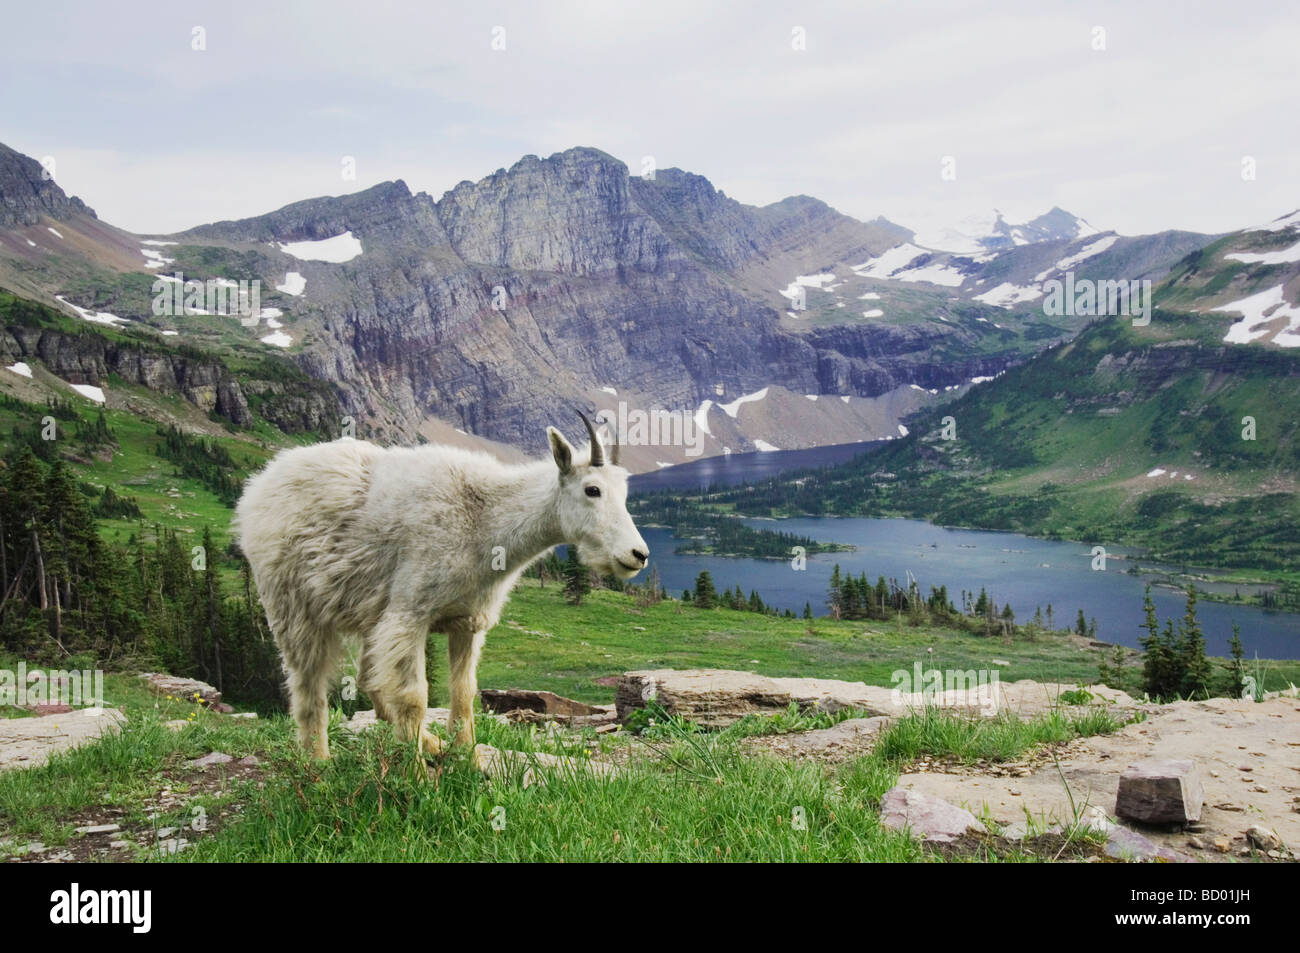 Mountain Goat Oreamnos americanus Juvenile shedding winter coat over Hidden Lake Glacier National Park Montana USA - Stock Image